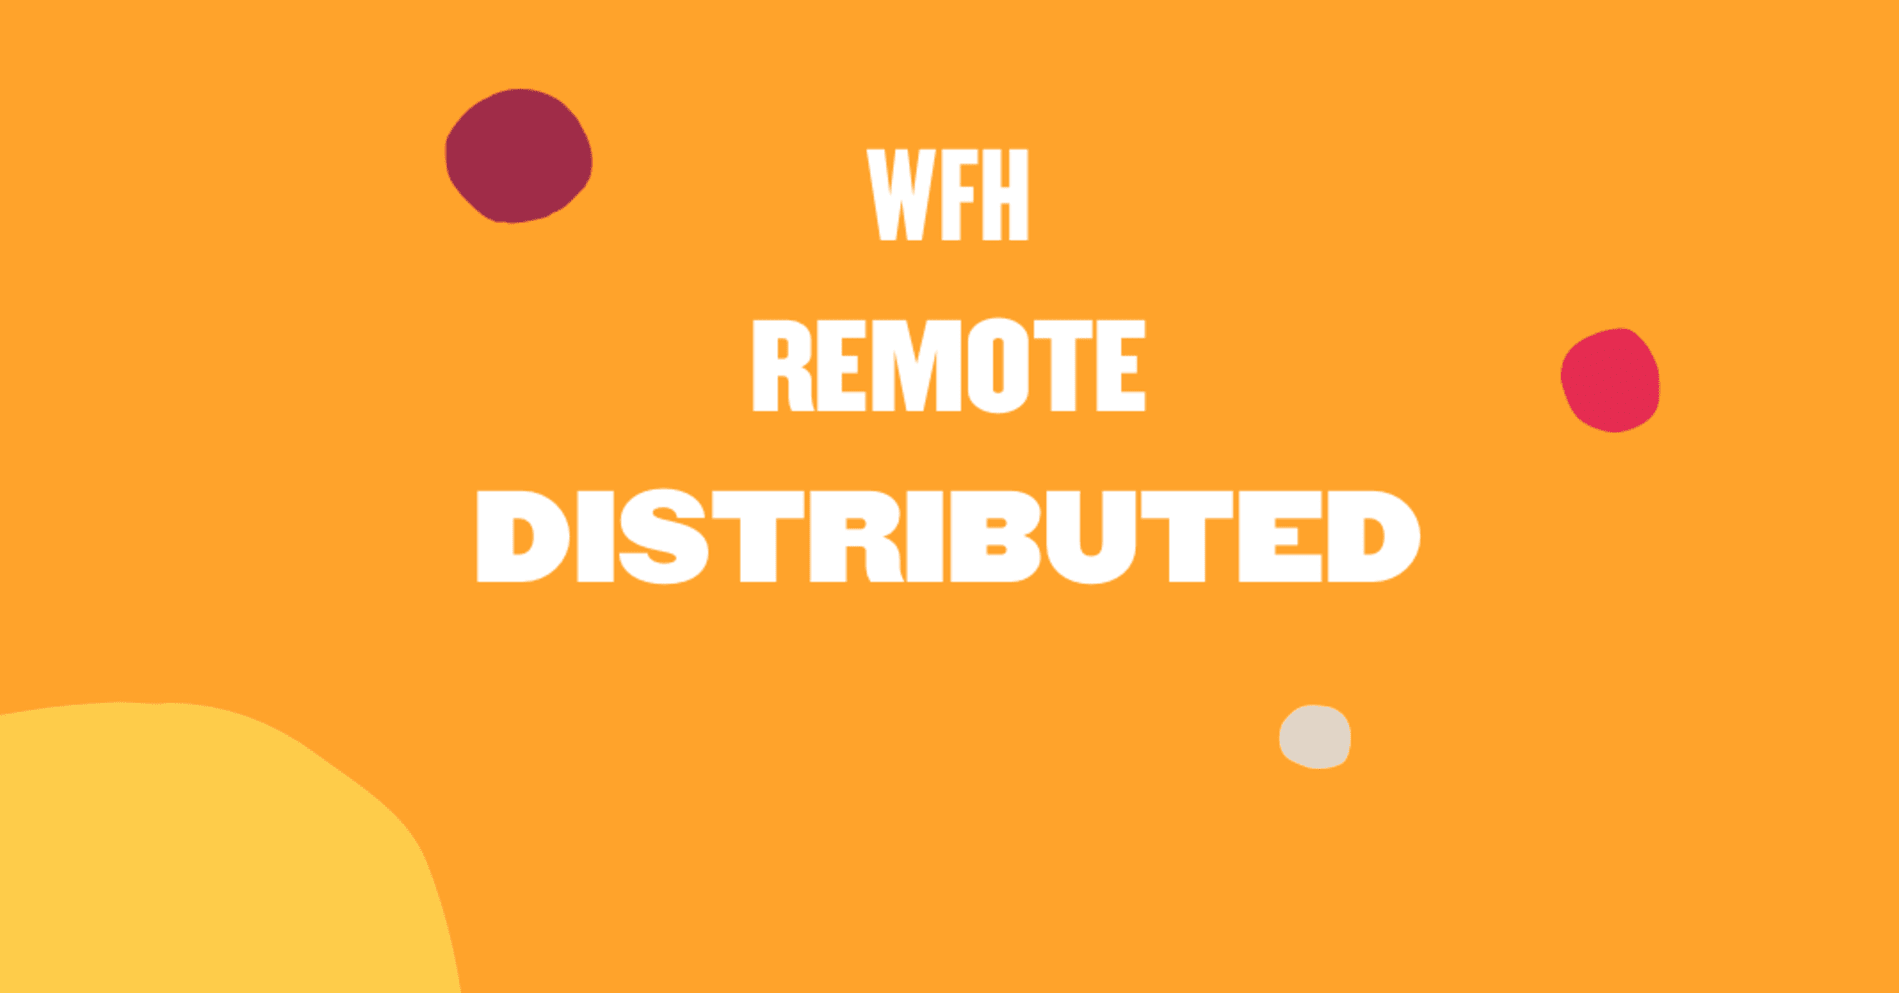 Remote, work from home, distributed: what's the difference? - Remote-work-from-home-distributed_-what's-the-difference_-_-Blog-img.png